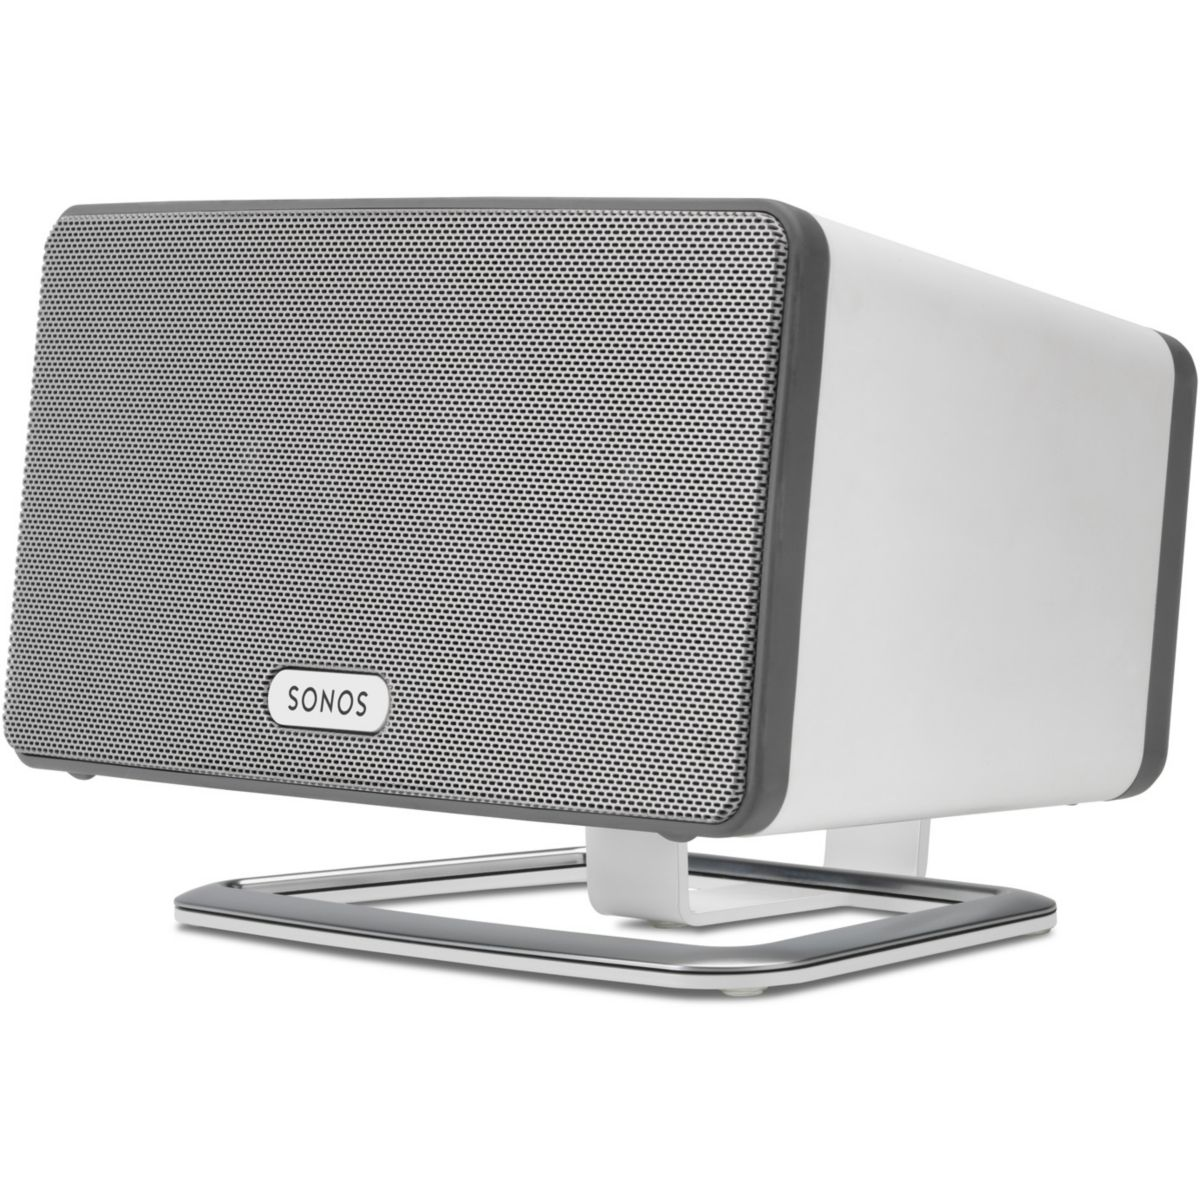 Meuble flexson support bureau play:3 blanc 5 (unit�) - 15% de remise imm�diate avec le code : deal15 (photo)